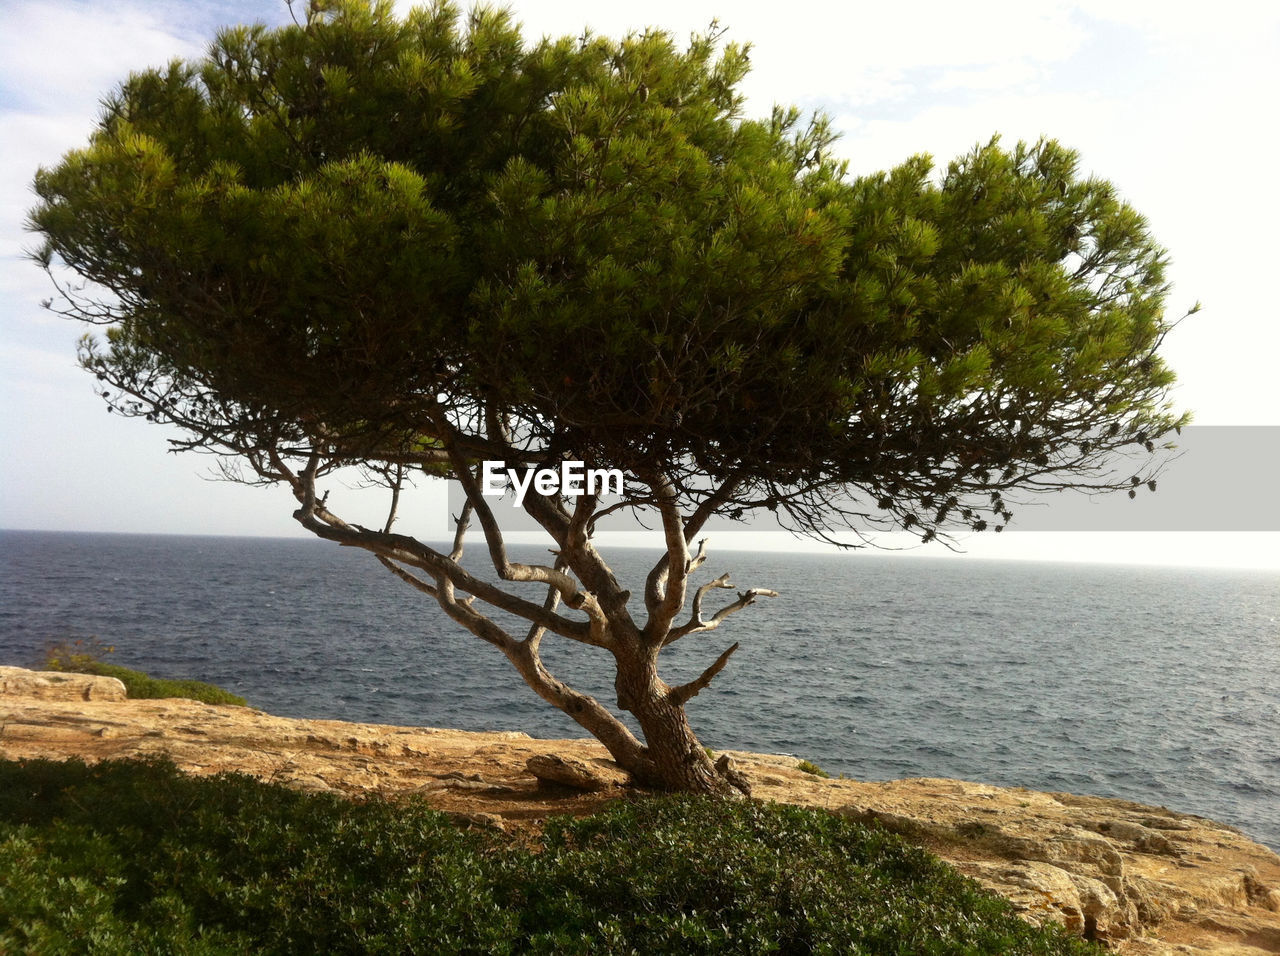 sea, tree, horizon over water, water, nature, beauty in nature, scenics, growth, tranquility, tranquil scene, branch, sky, outdoors, foreground, lone, day, no people, clear sky